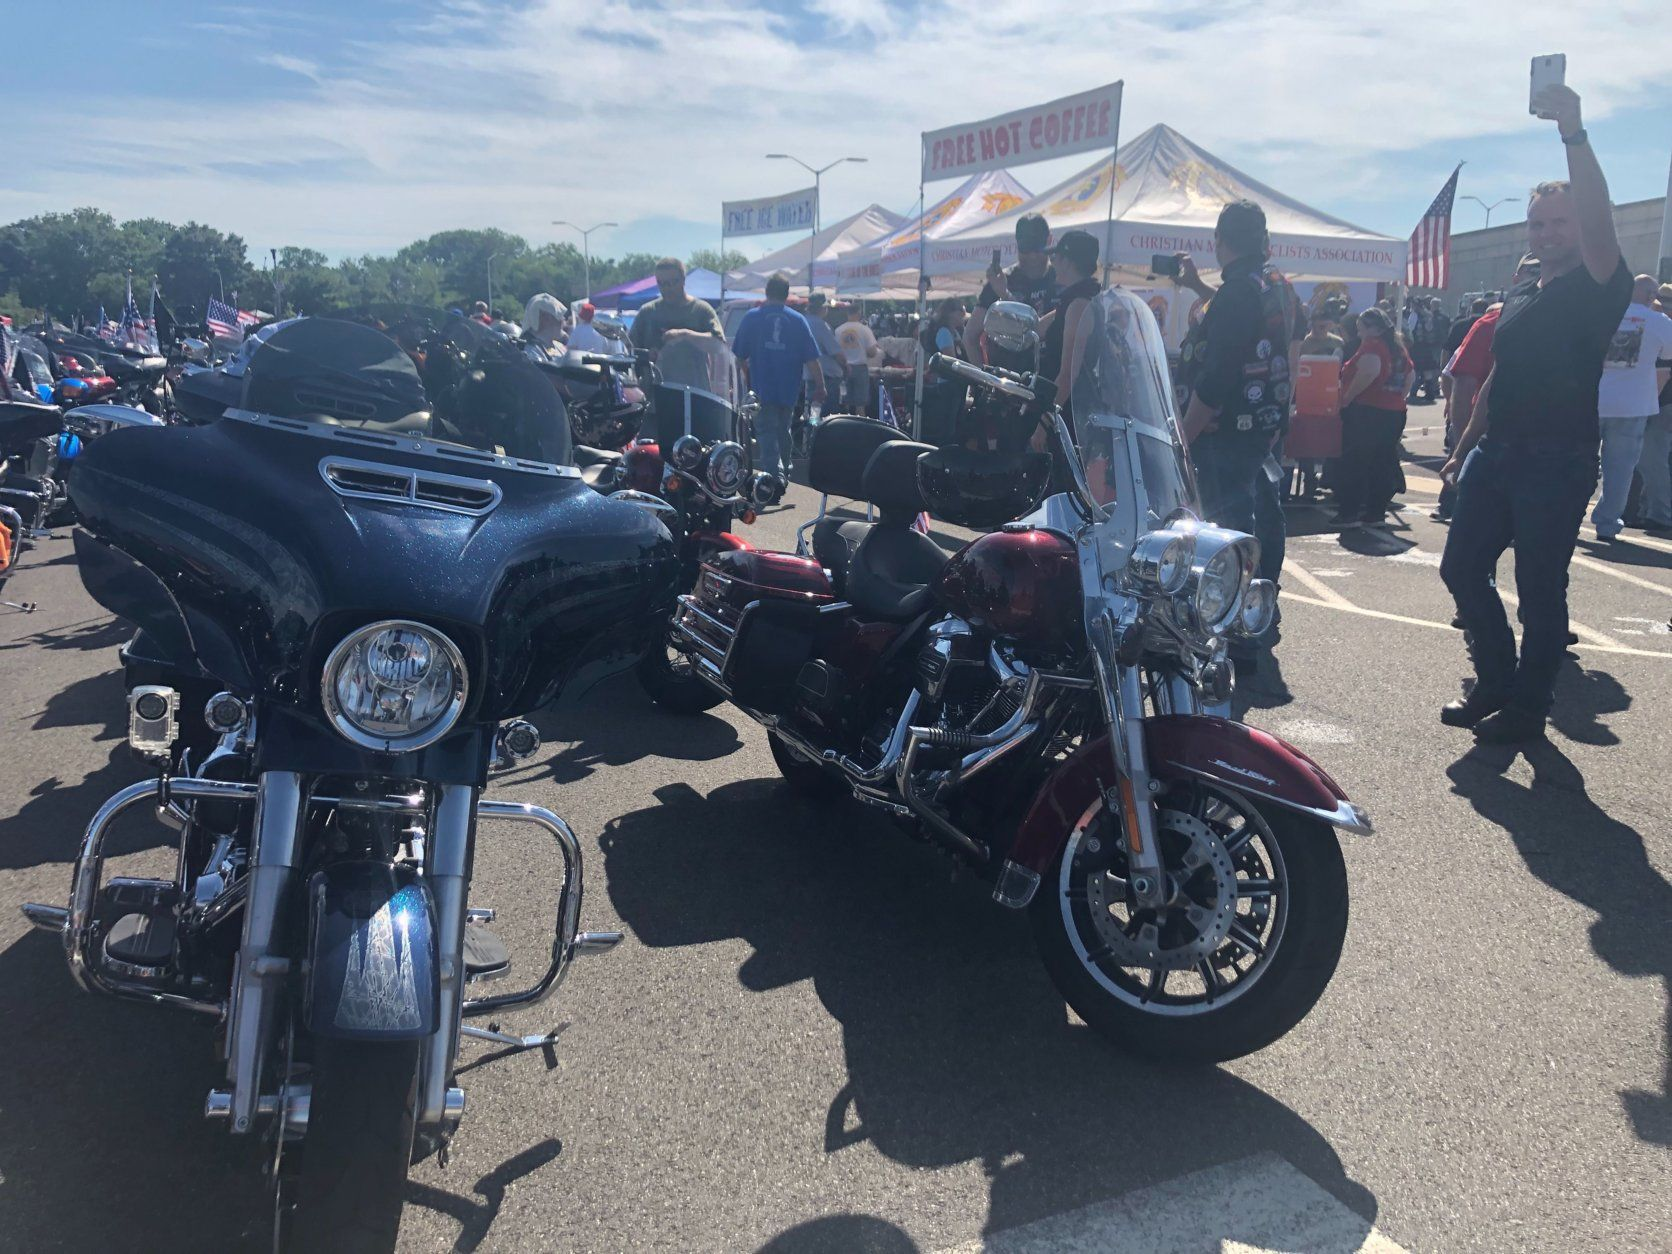 It looks like the final Rolling Thunder ride through Washington, D.C. will be marked by lots of sunshine. (WTOP/Melissa Howell)